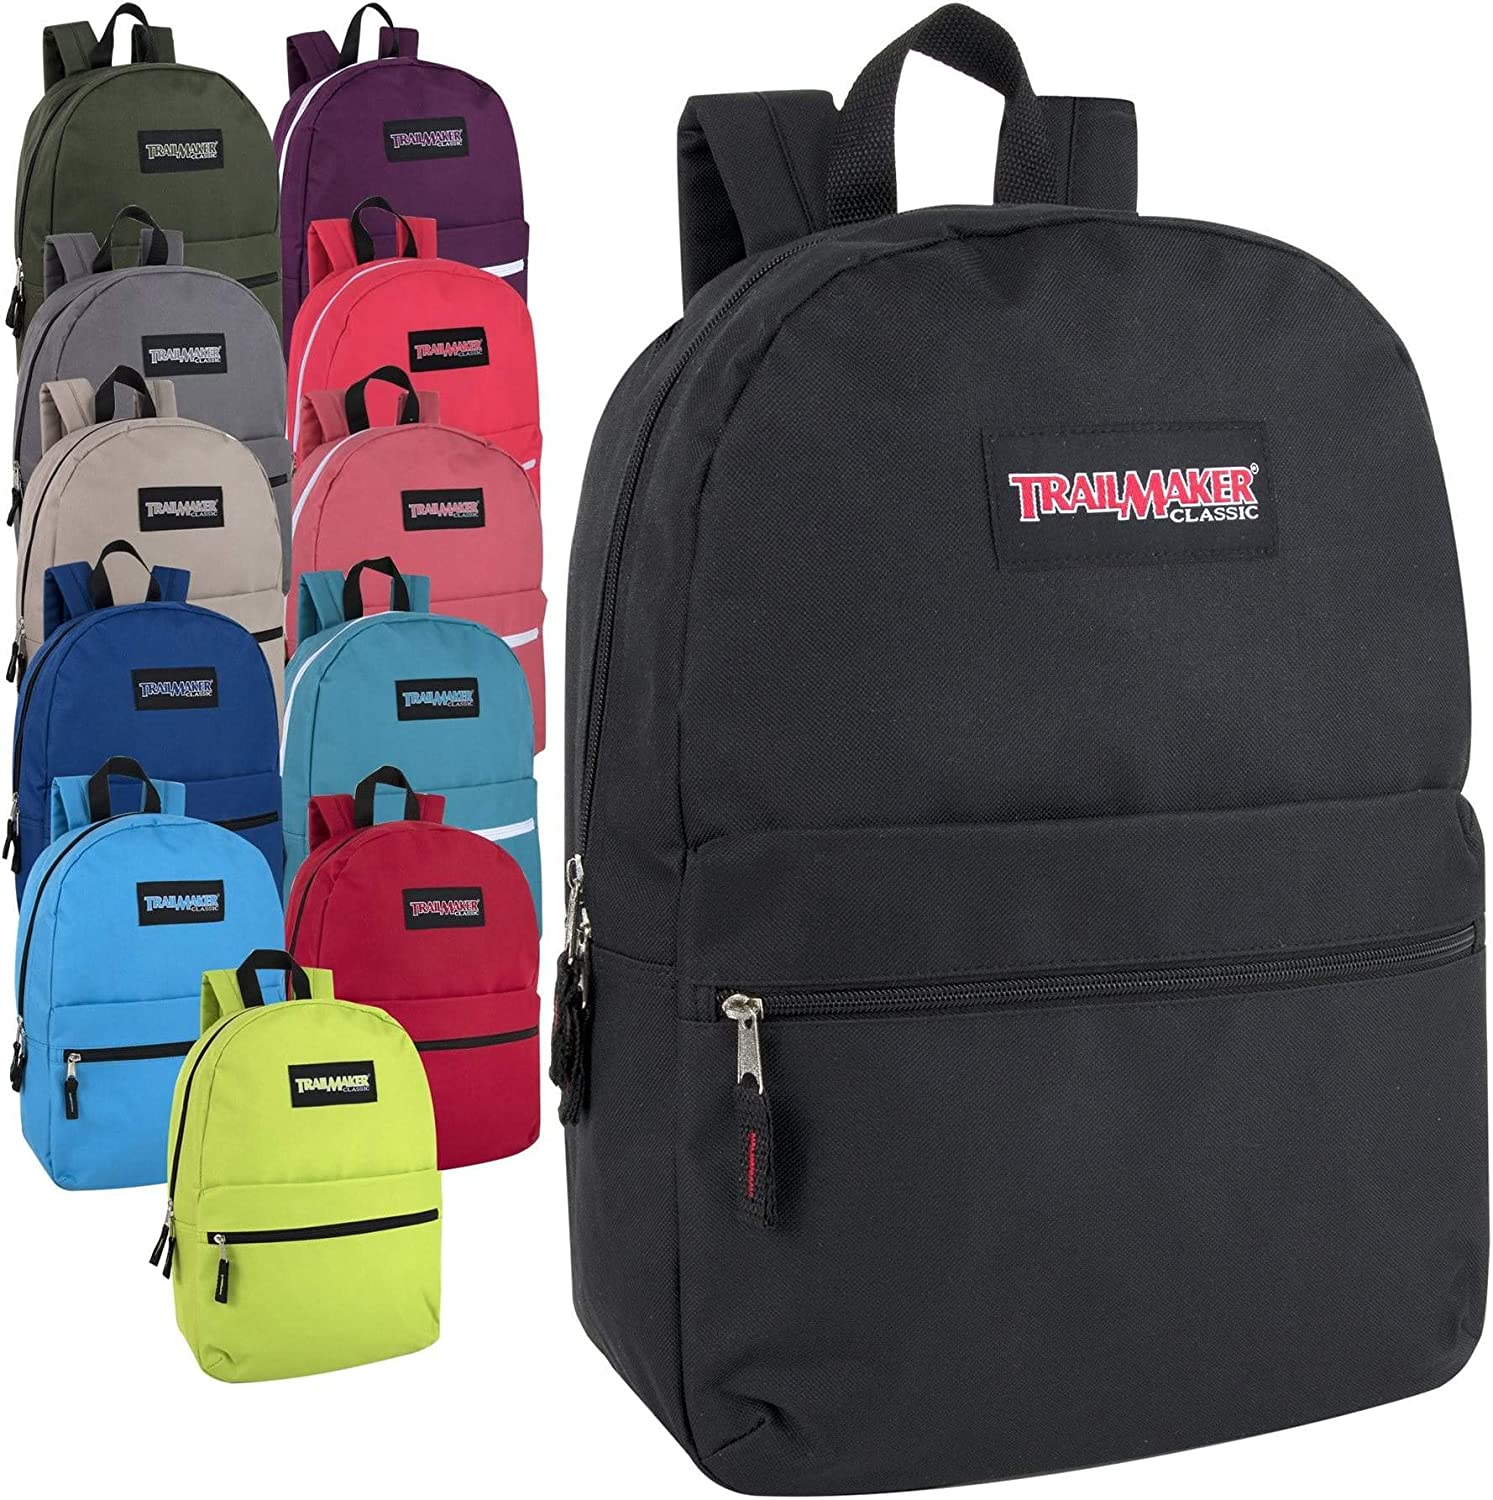 Lot of 24 Wholesale Trailmaker 17 Inch Backpack